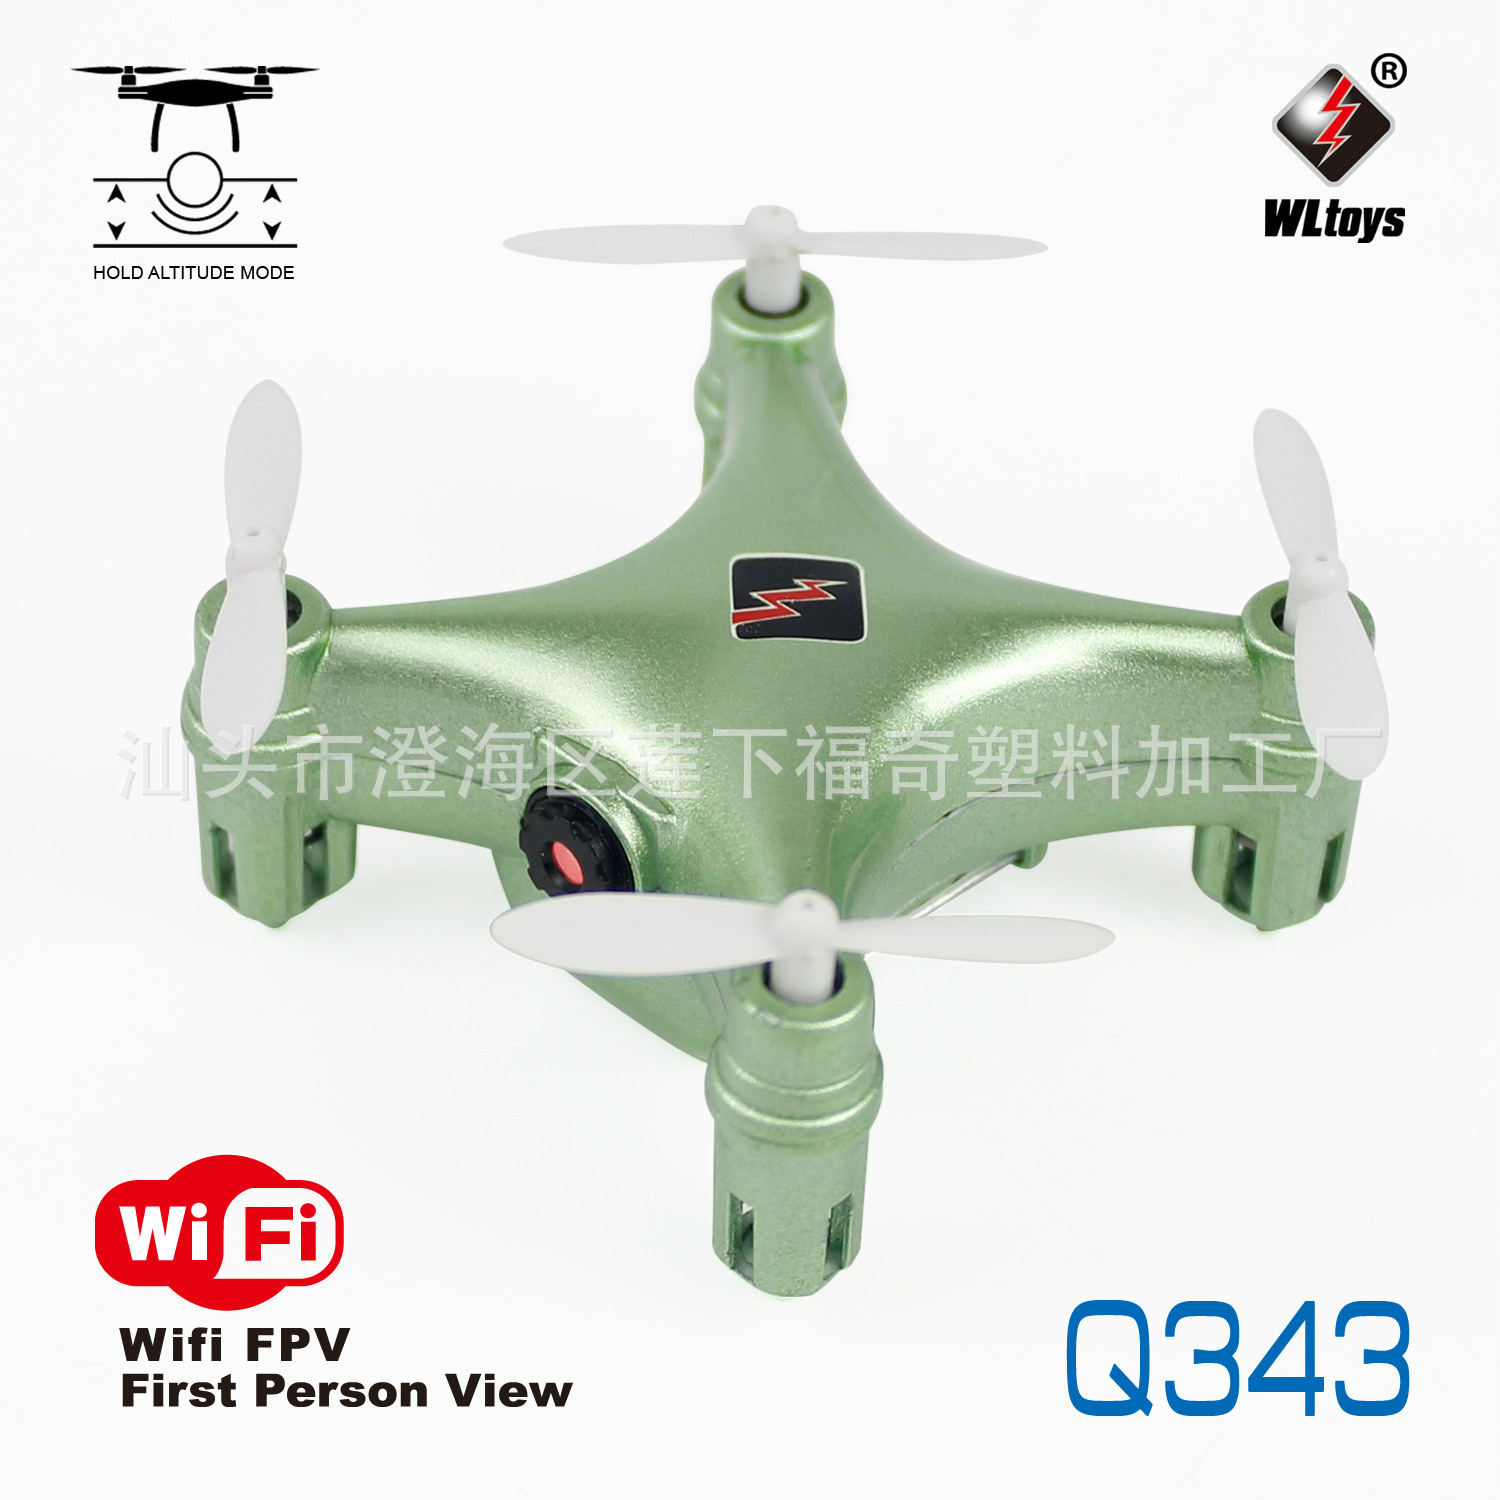 Q343 Unmanned Aerial Vehicle Mini Set High WiFi Aircraft For Areal Photography Remote Control Aircraft Hot Selling Pin Toy